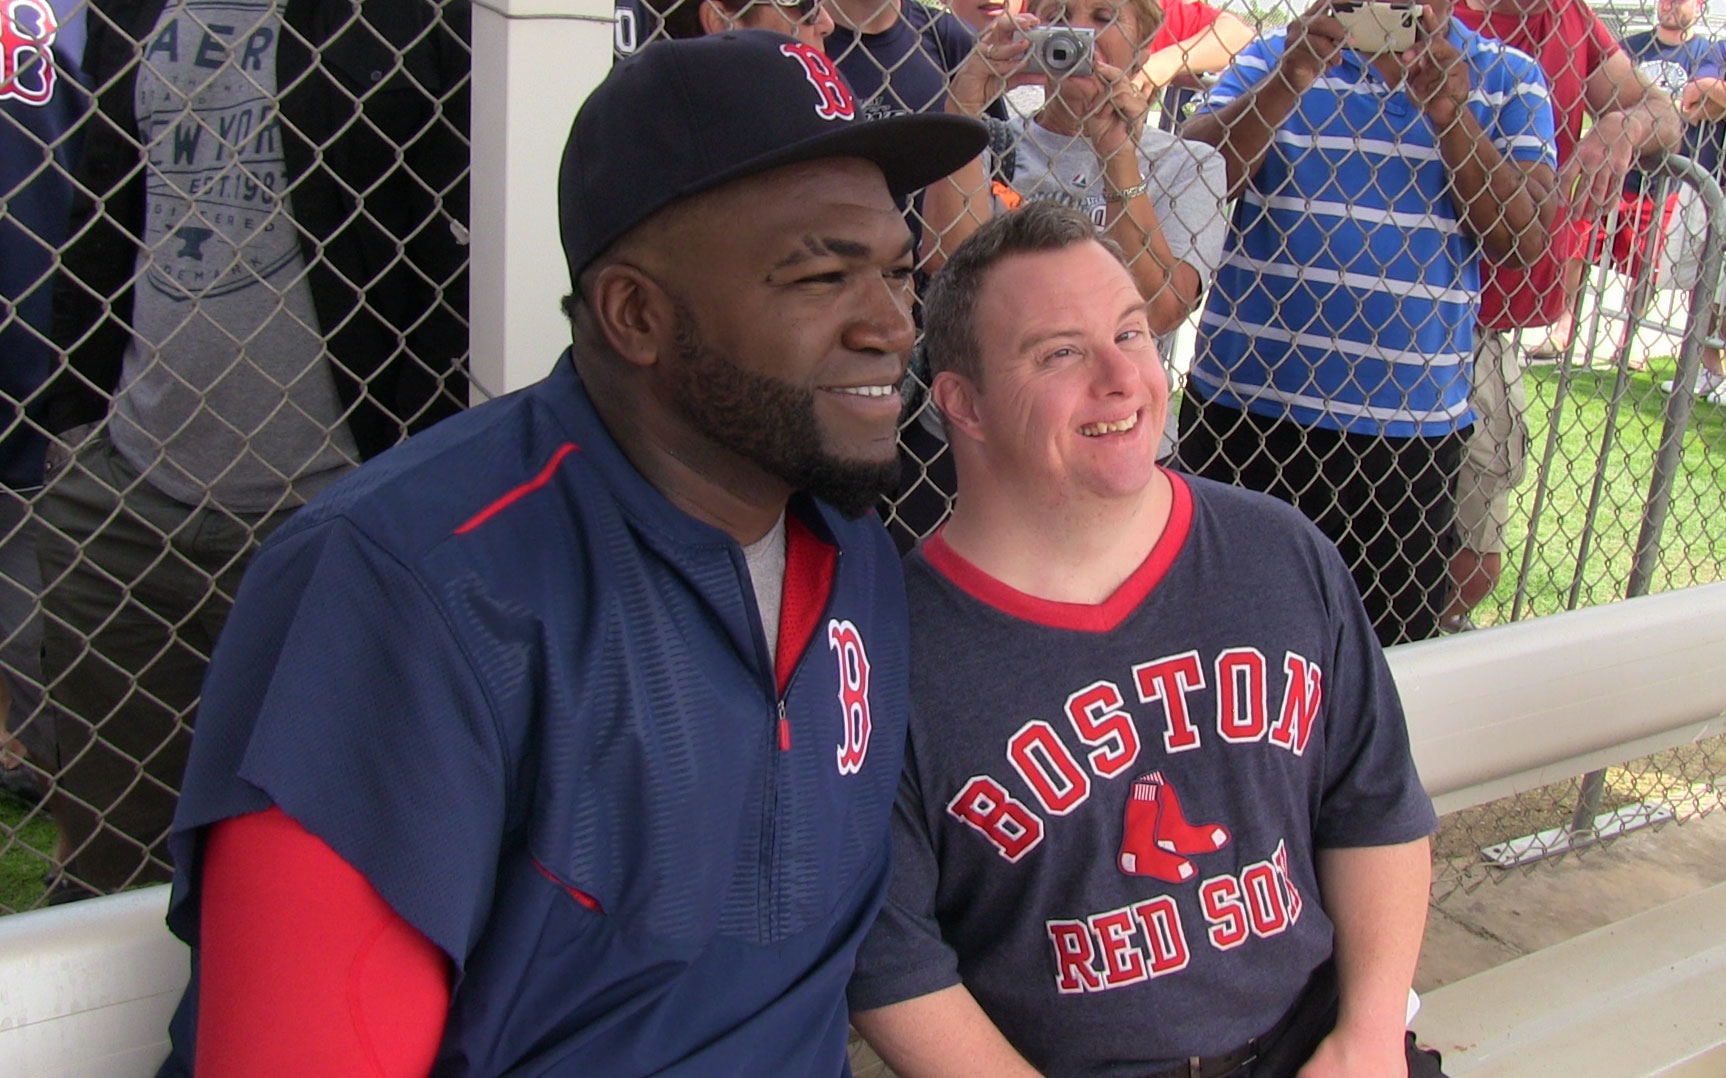 David Ortiz -- The Face of Baseball in America -- Talks Hall of Fame, Steroid Testing, and More